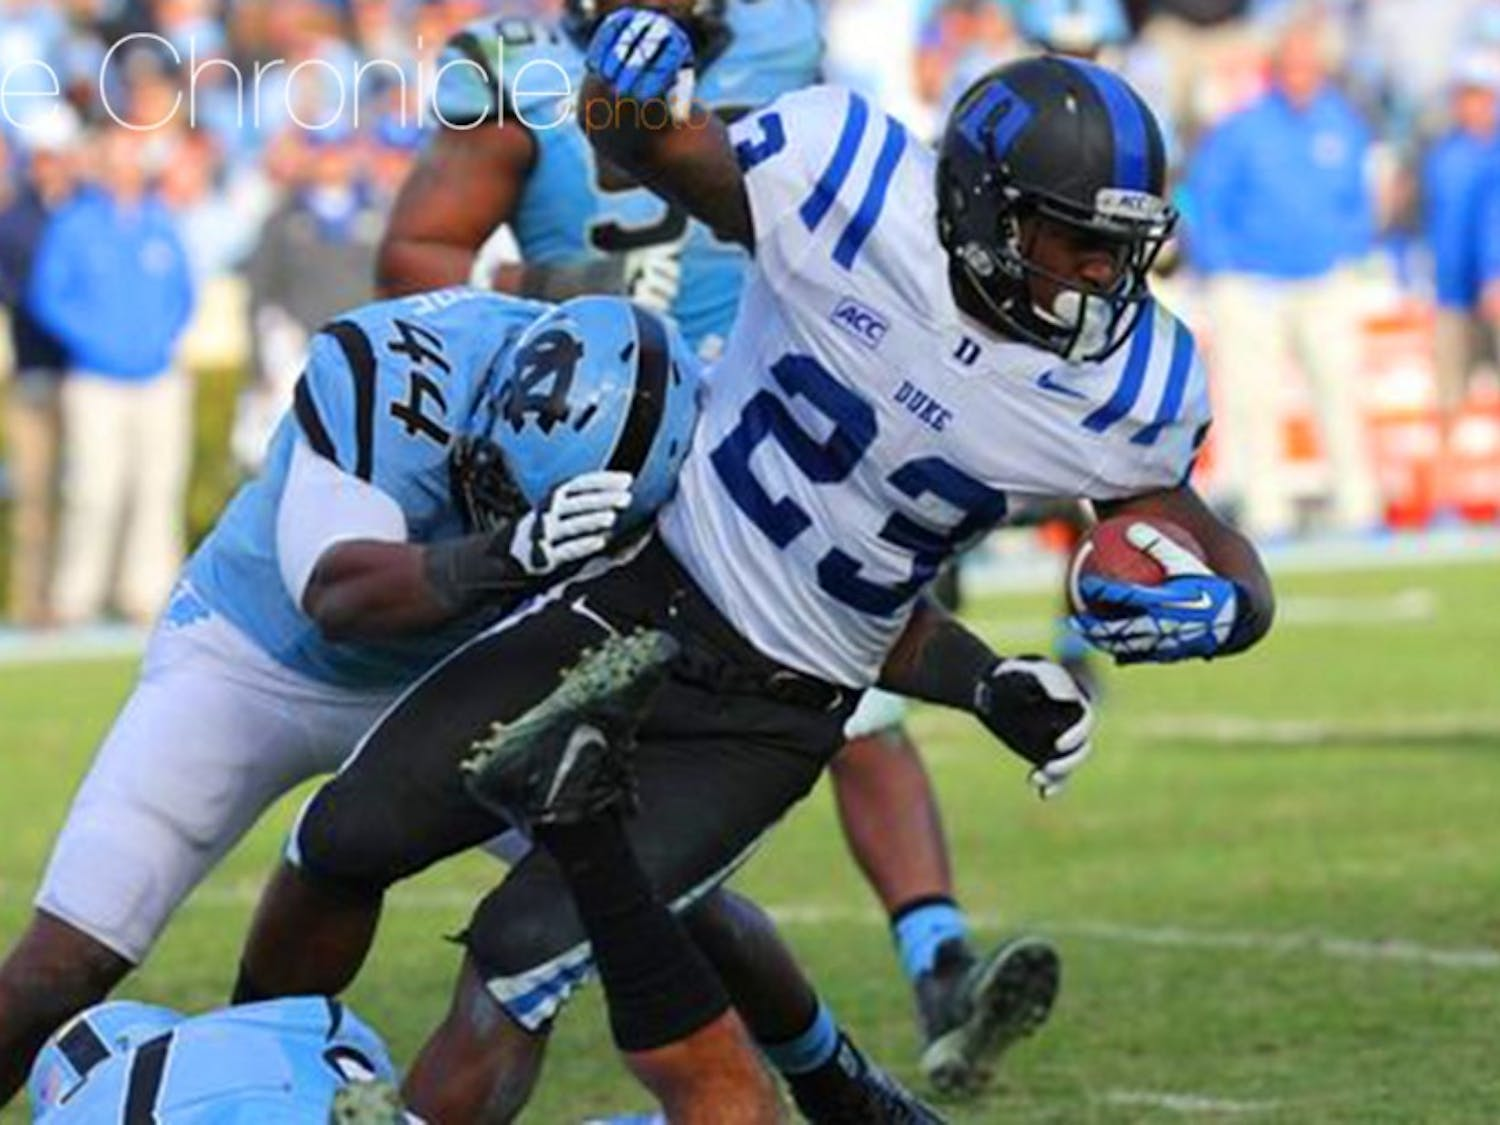 Former Duke running back Juwan Thompson will suit up for the Denver Broncos in the Super Bowl this Sunday against the Carolina Panthers.